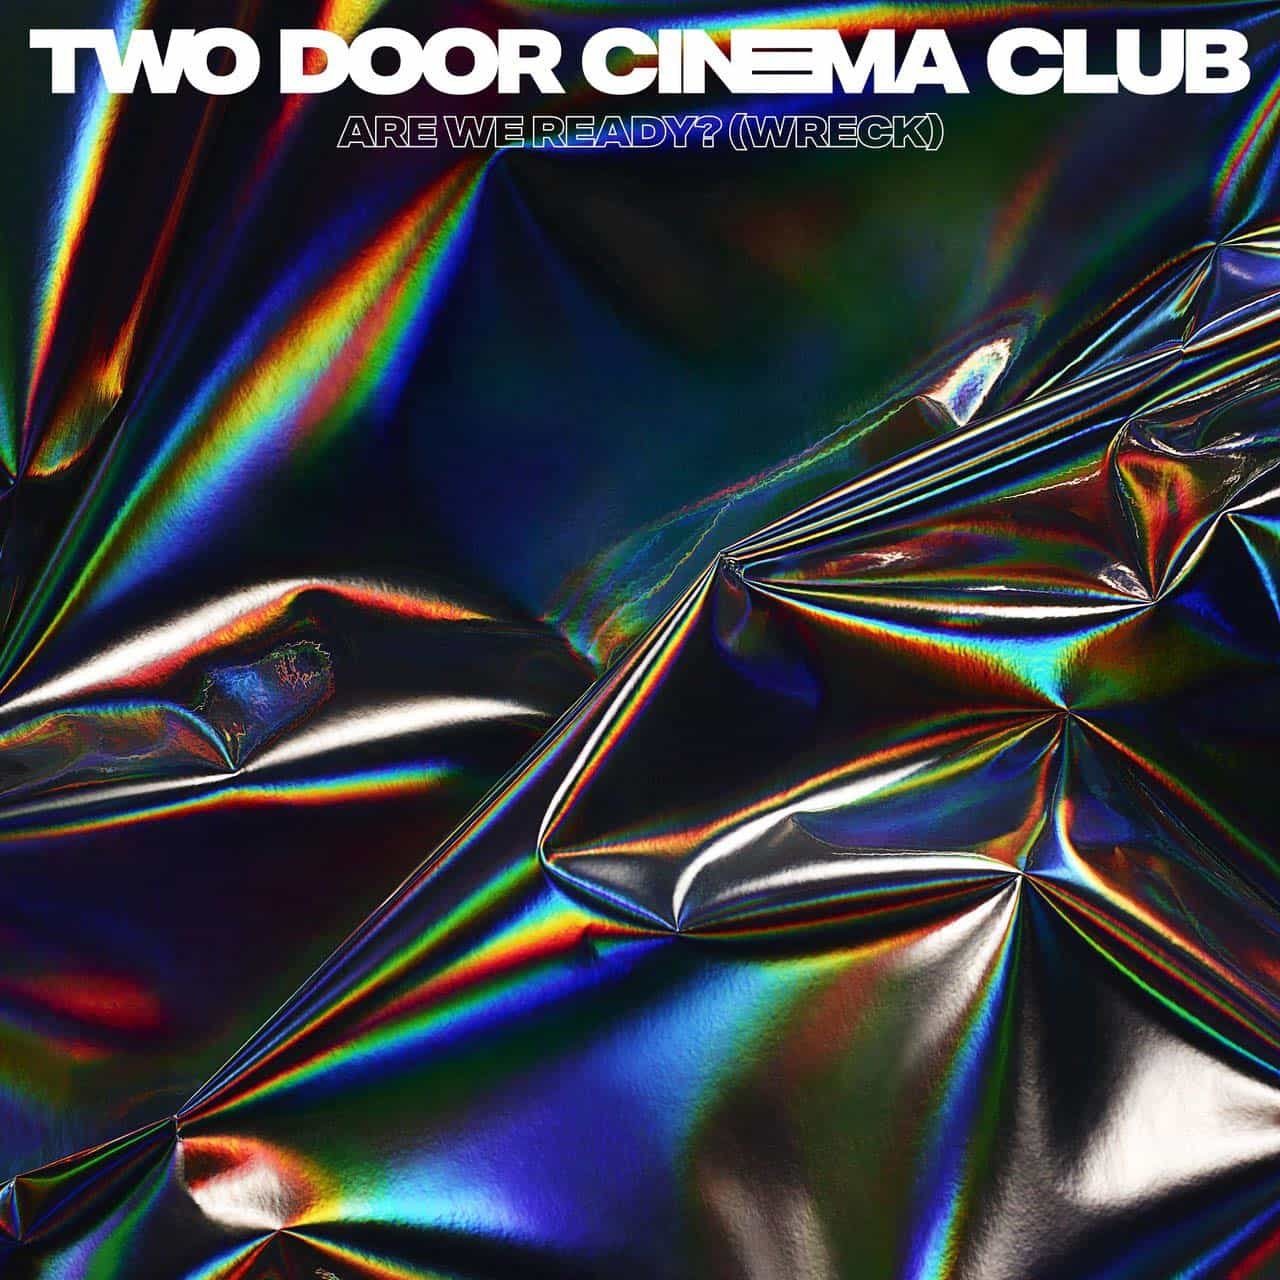 Two-Door-Cinema-Club-Are-You-Ready_-Wreck-2016